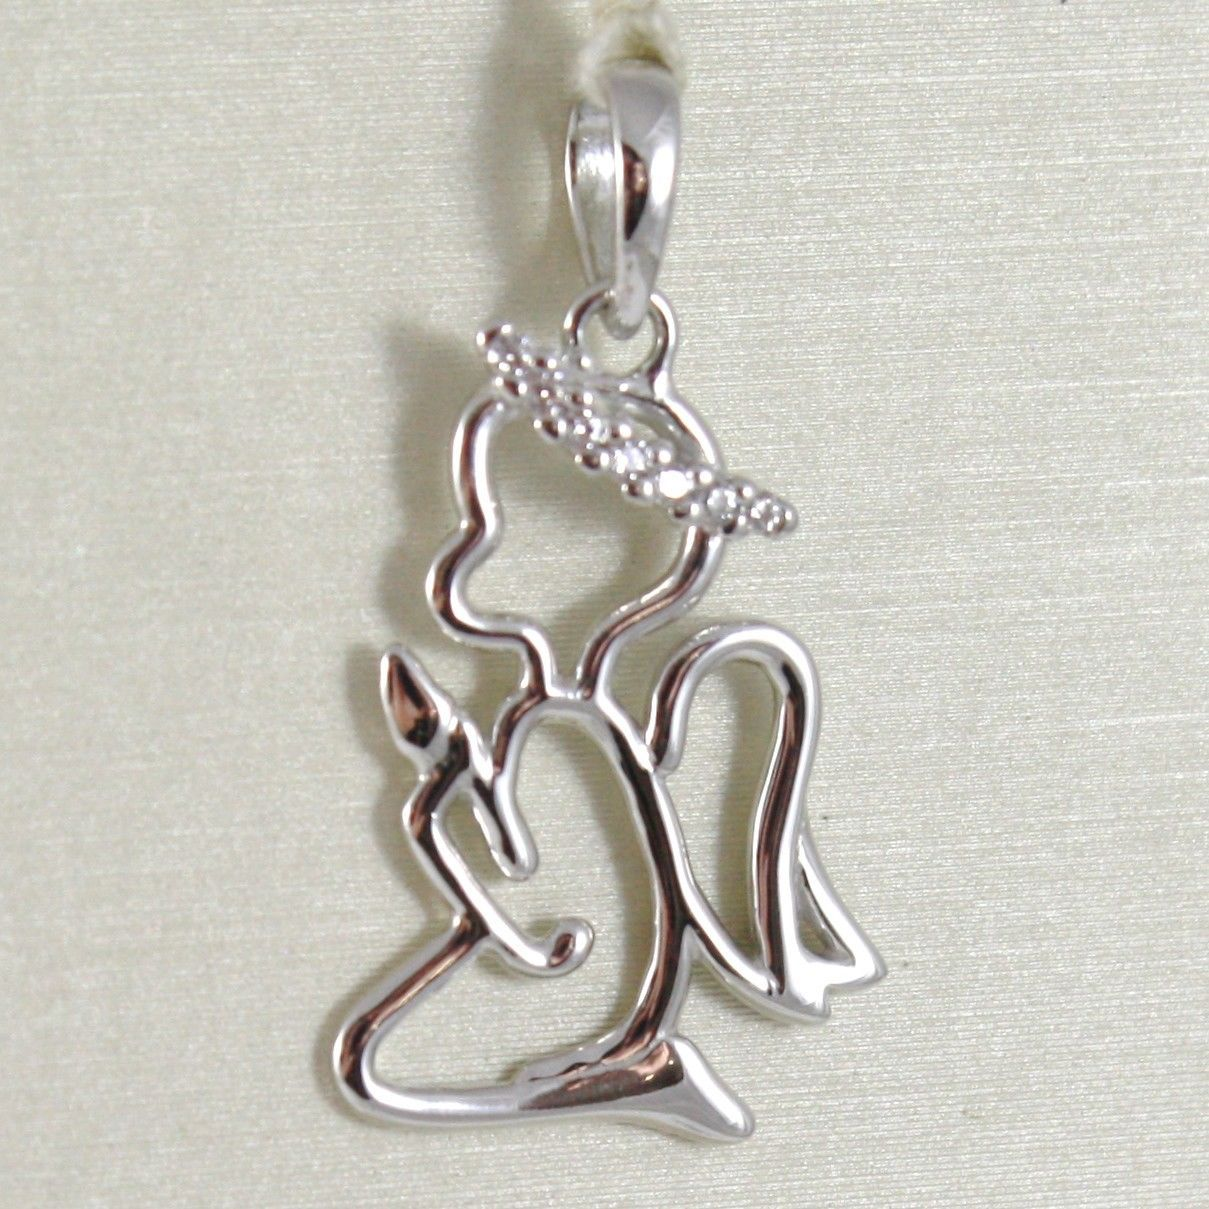 SOLID 18K WHITE GOLD PENDANT STYLIZED GUARDIAN PRAYER ANGEL ZIRCONIA, ITALY MADE